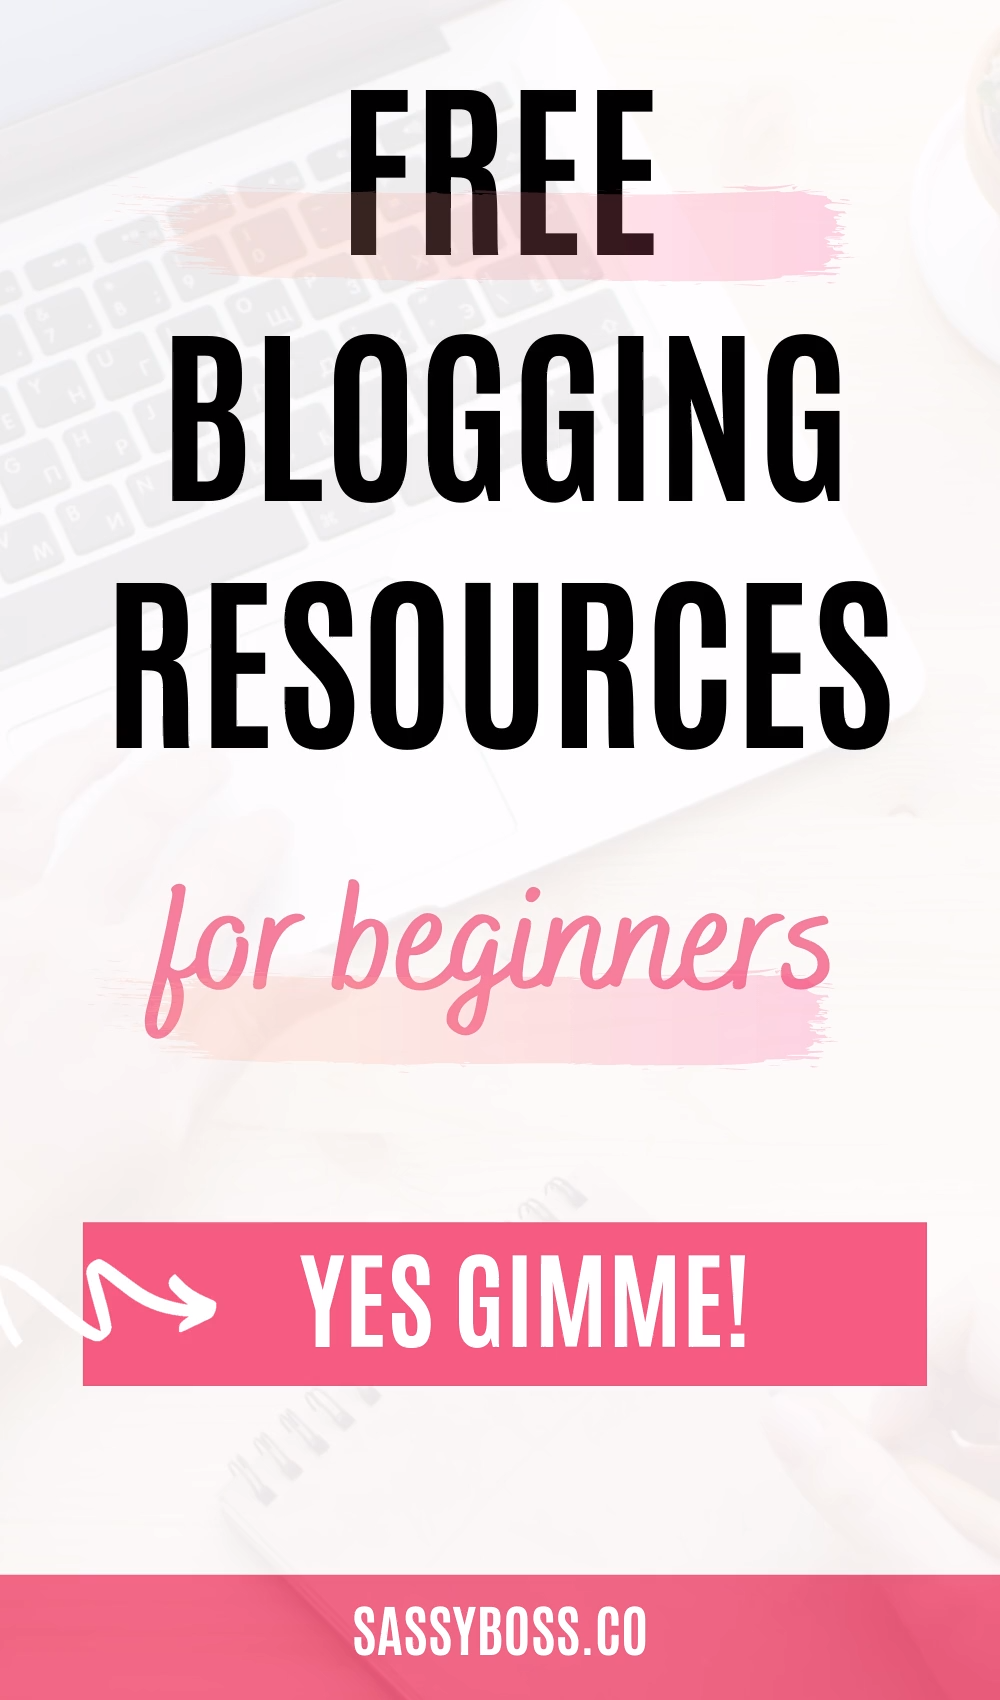 Free Blogging Resources For Beginners